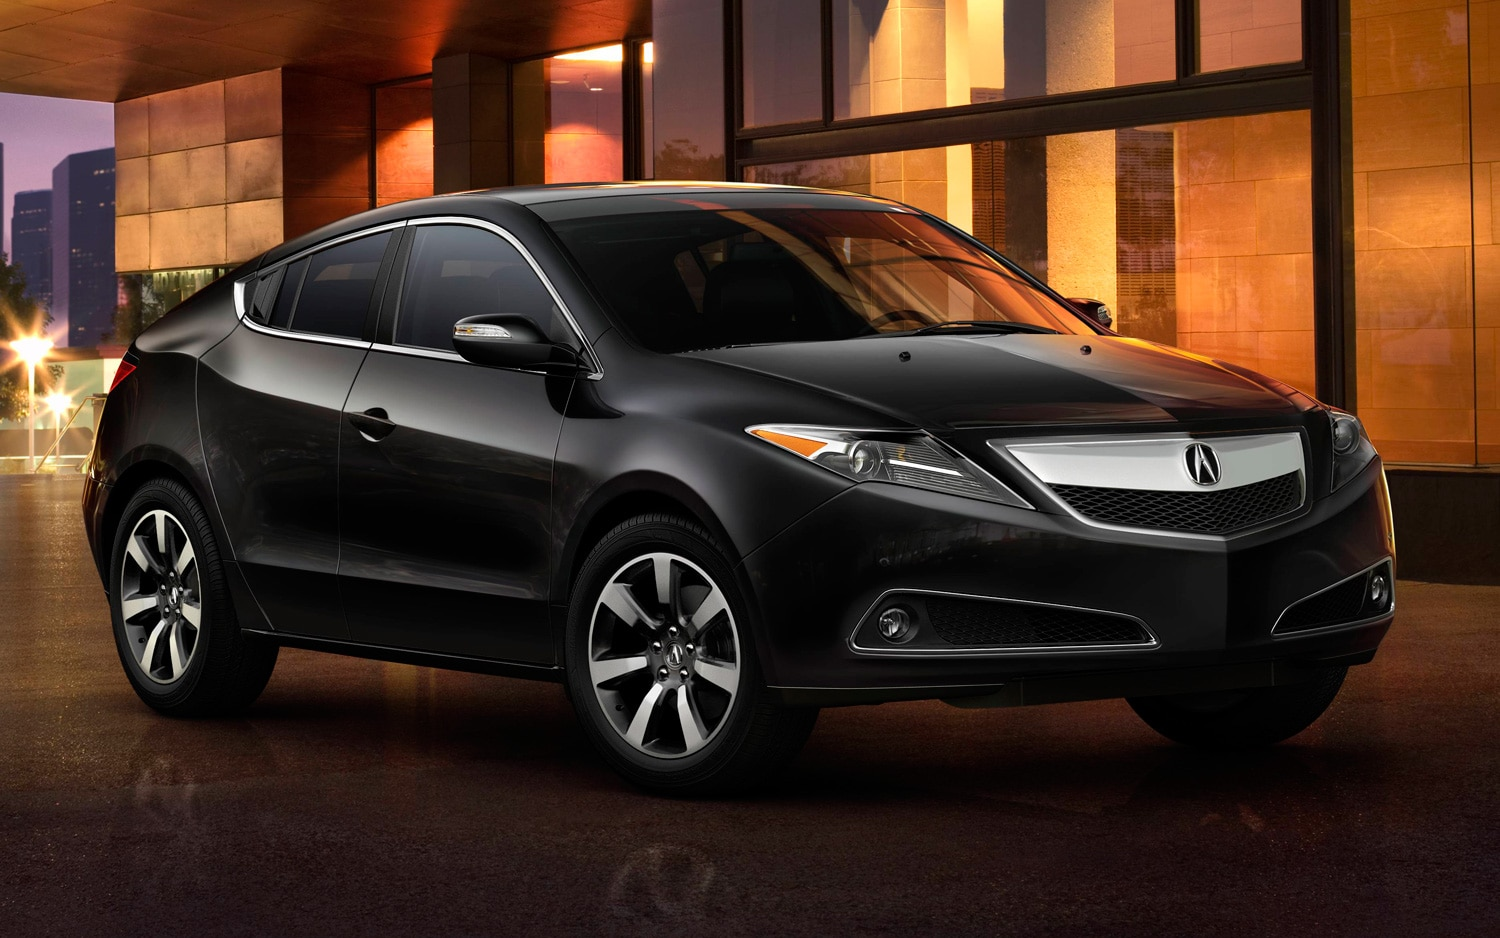 Discontinued The 2013 Acura Zdx Will Be The Last Acura Zdx